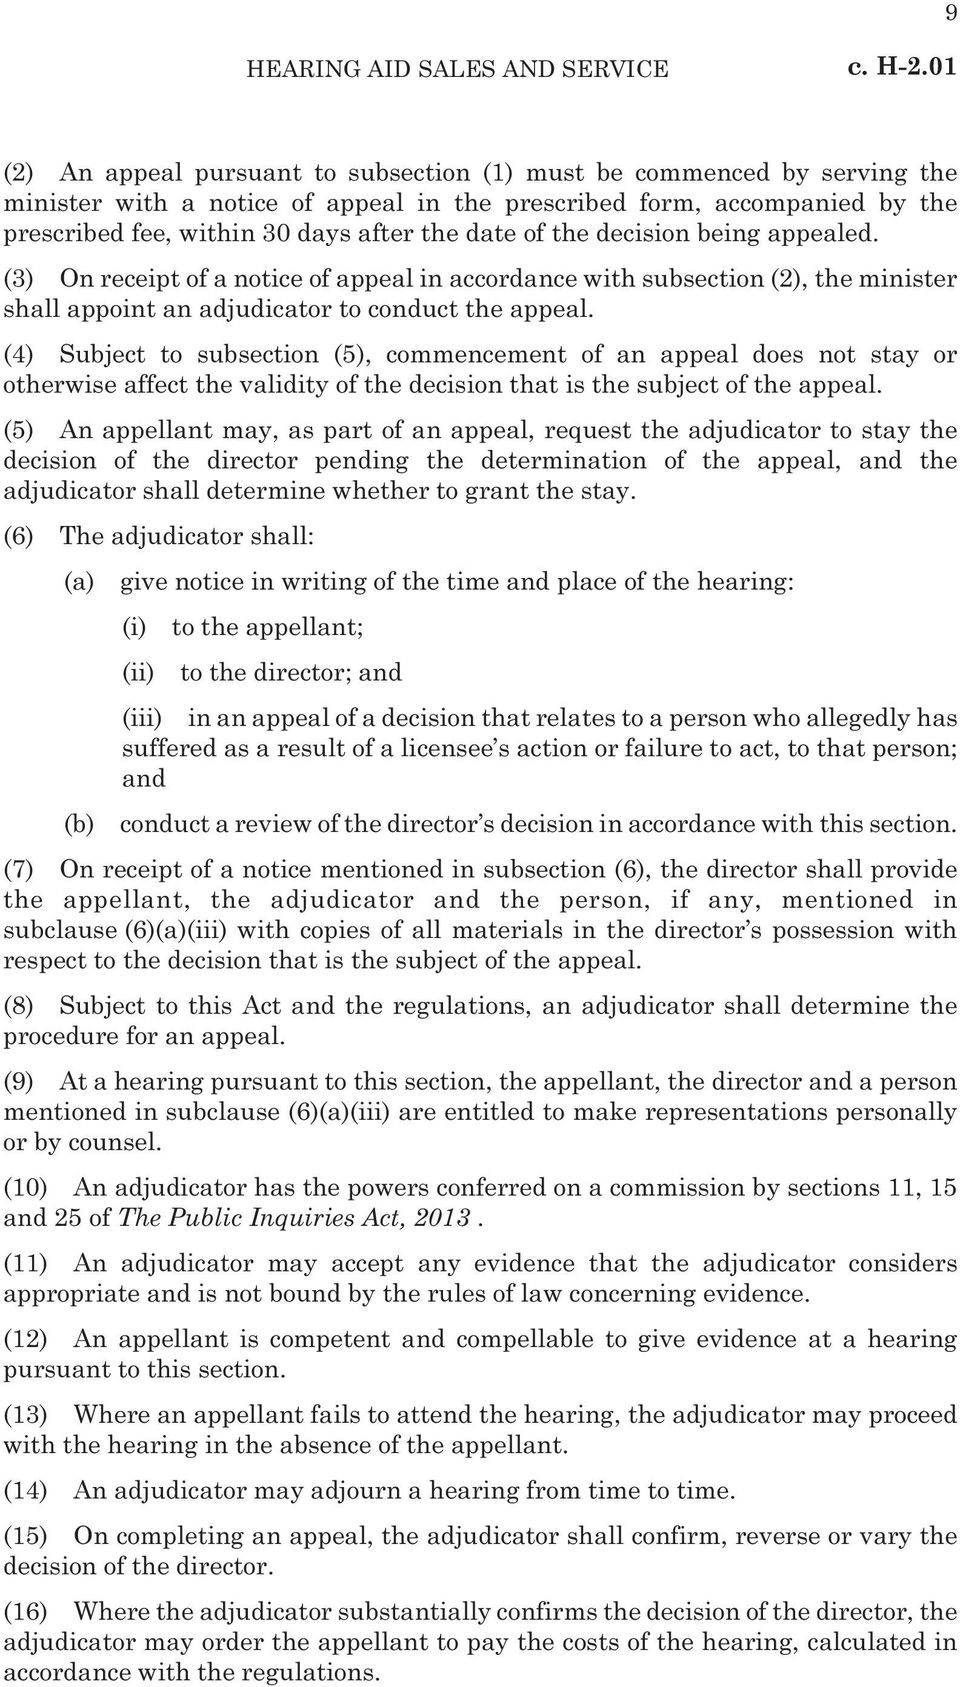 of the decision being appealed. (3) On receipt of a notice of appeal in accordance with subsection (2), the minister shall appoint an adjudicator to conduct the appeal.